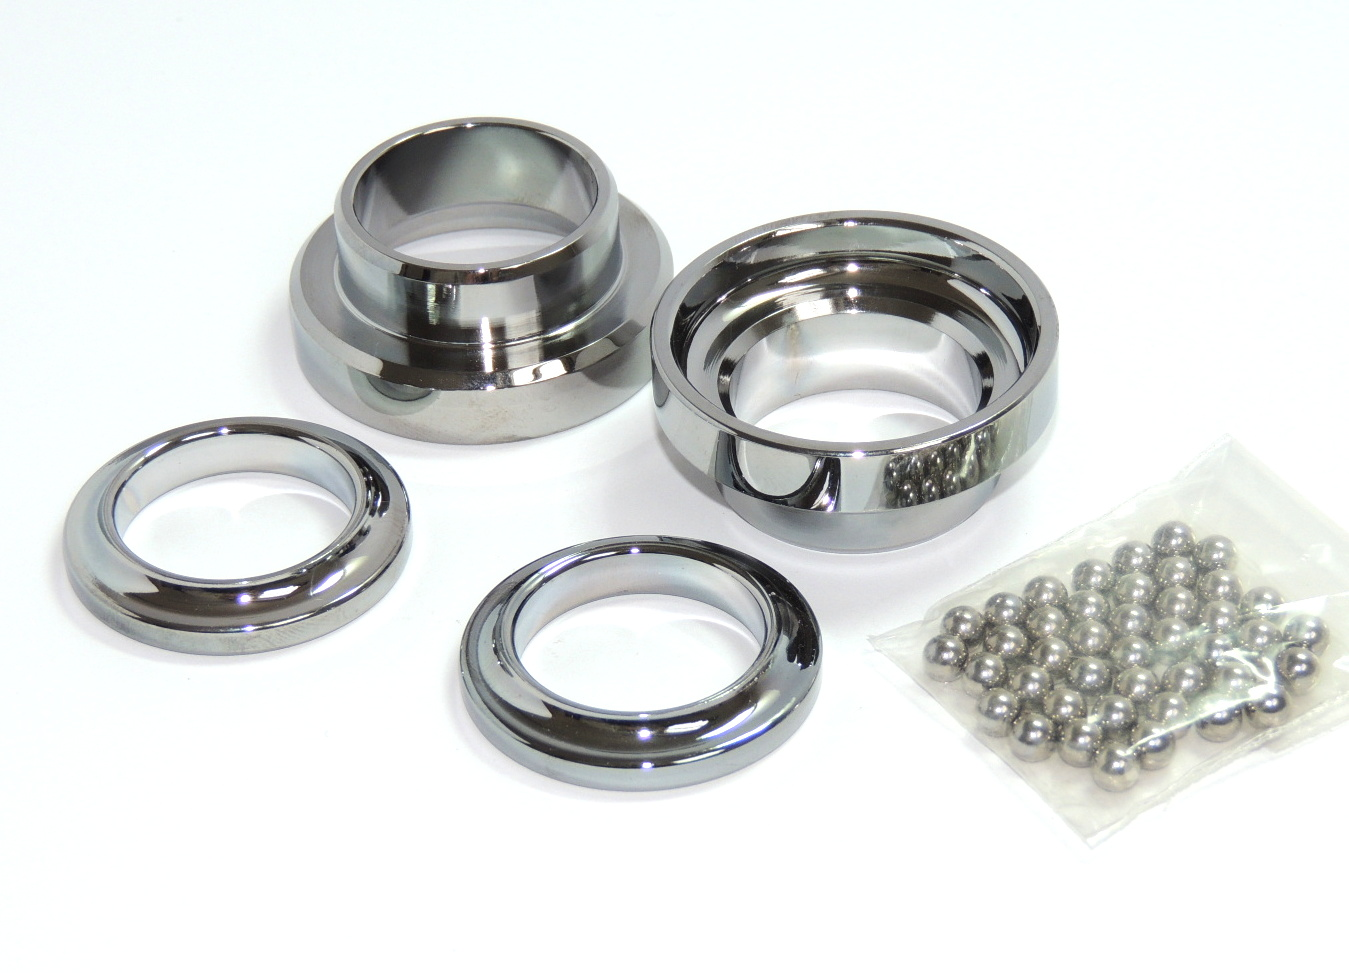 Head bearings - JAWA 50, S22, Jawetta, ČZ 125/150